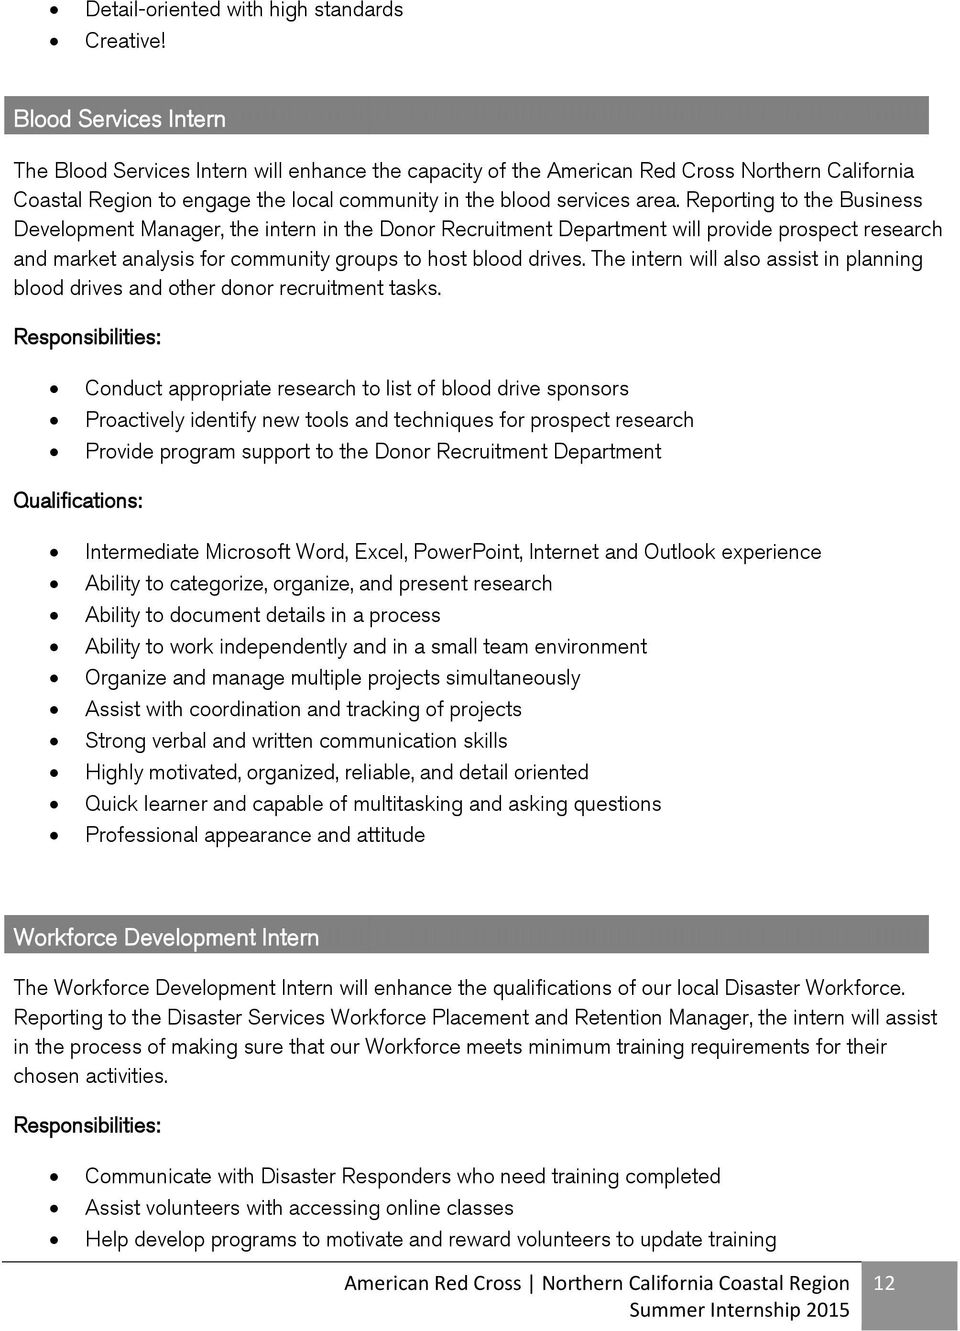 Reporting to the Business Development Manager, the intern in the Donor Recruitment Department will provide prospect research and market analysis for community groups to host blood drives.